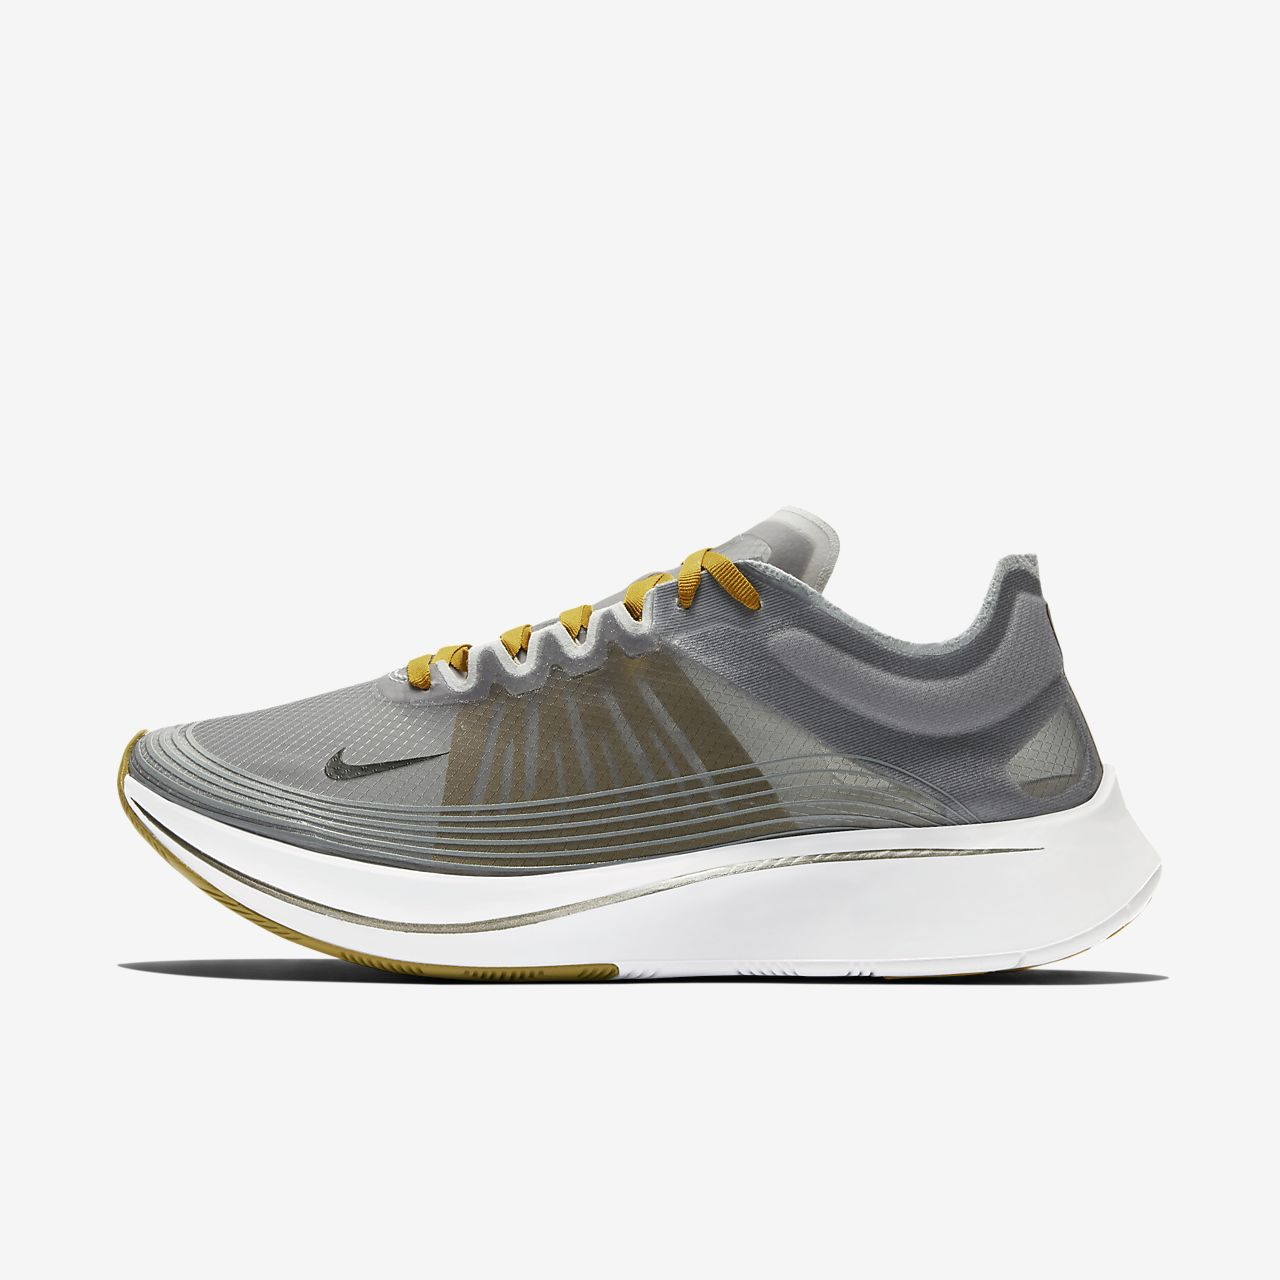 Zoom Fly De Sp Running Be Chaussure Nike q8t67cA